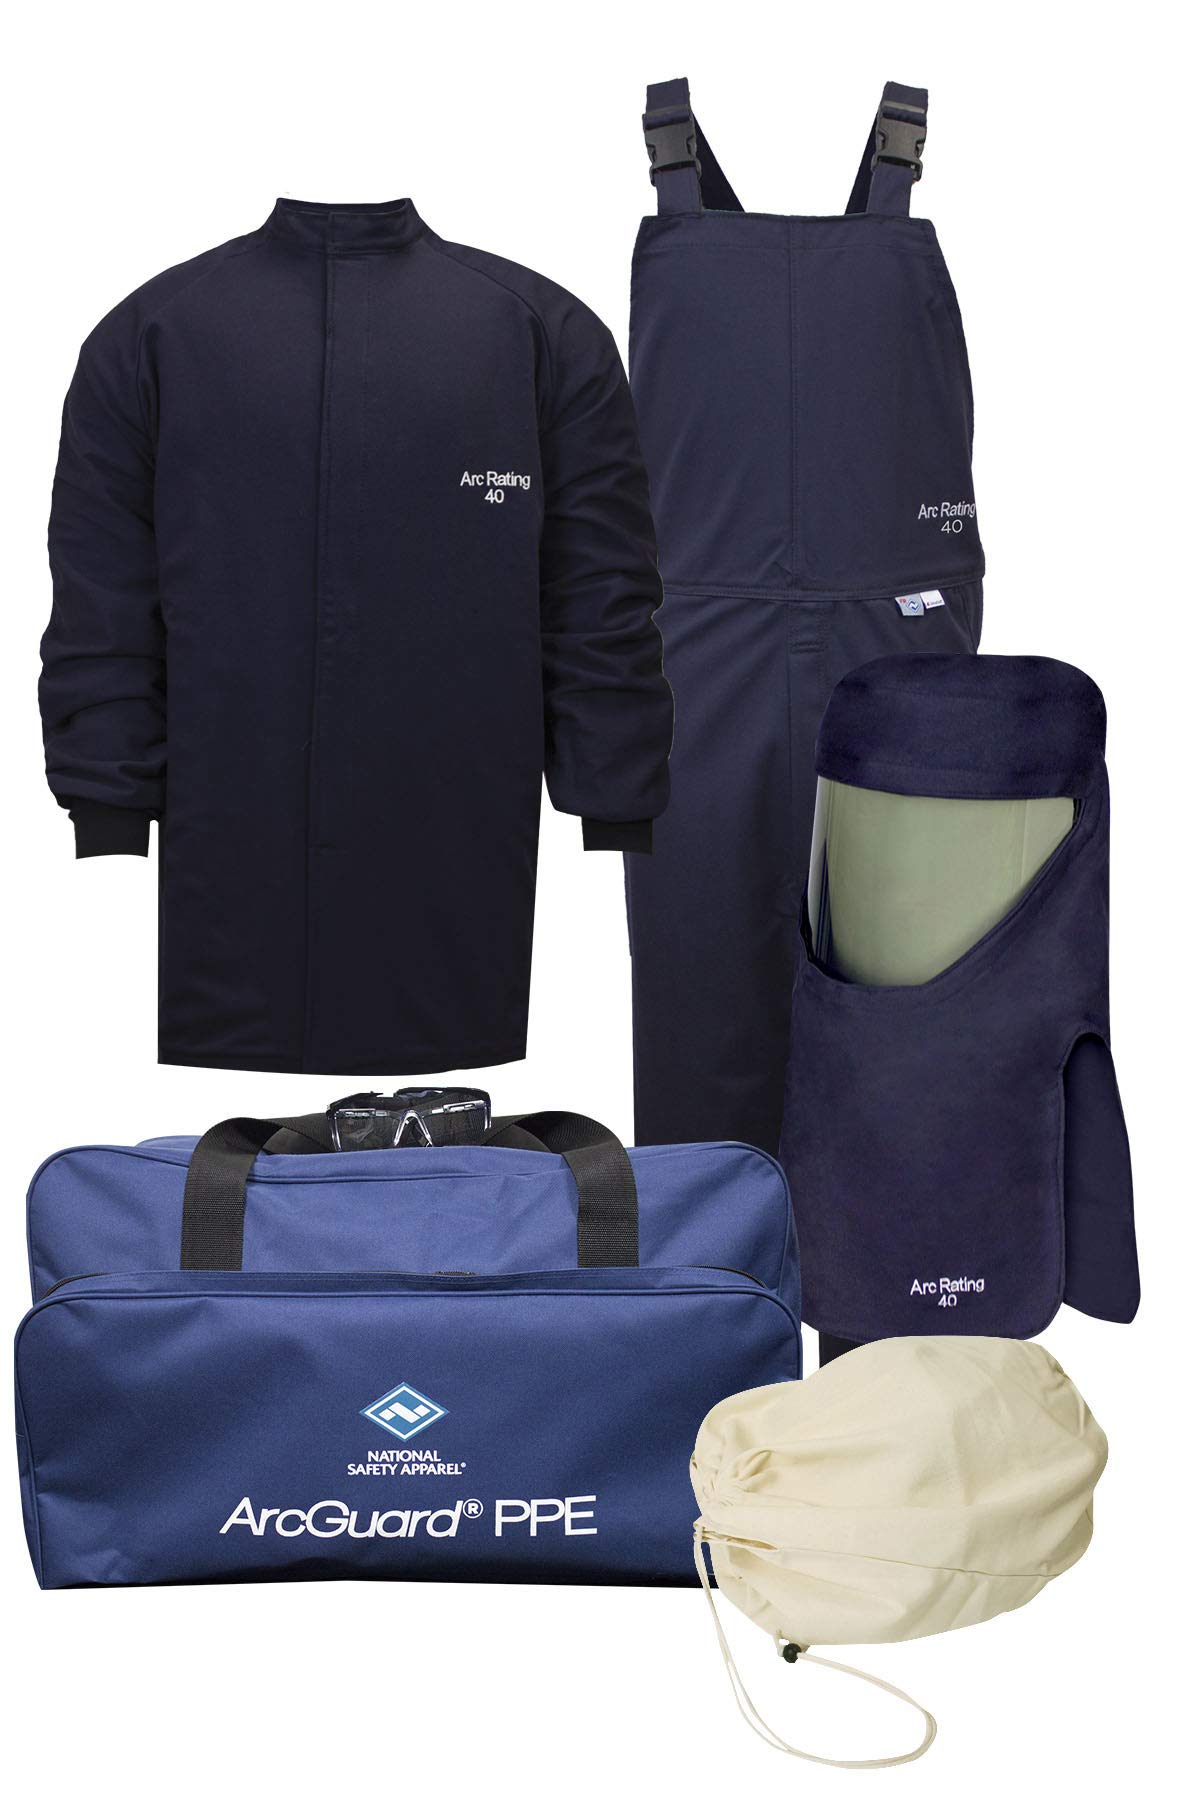 National Safety Apparel KIT4SC40NGLG ArcGuard HRC 4 Arc Flash Kit with 40 Cal/sq cm Ultra Soft Short Coat and Bib Overall, Large, Navy